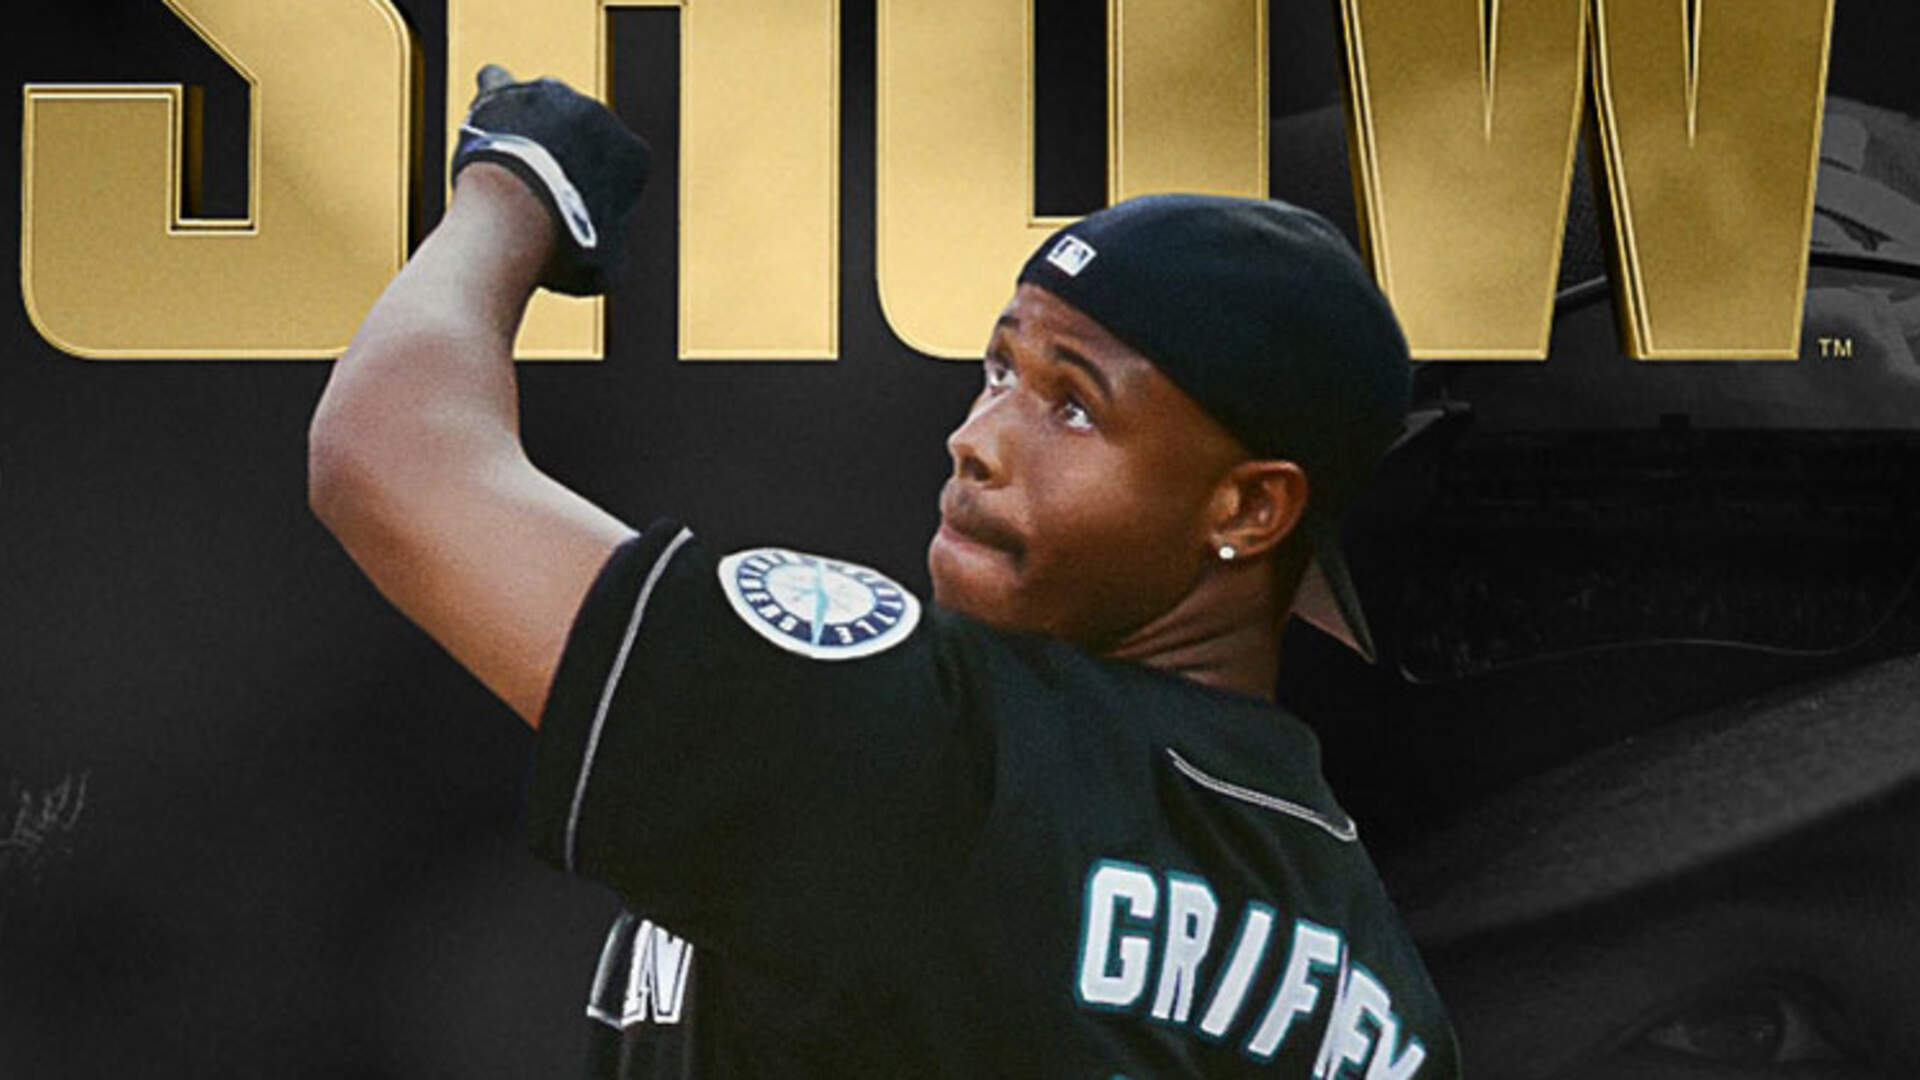 MLB The Show 17's Ken Griffey Jr. Cover Brings Back Memories of Michael Jordan in NBA 2K